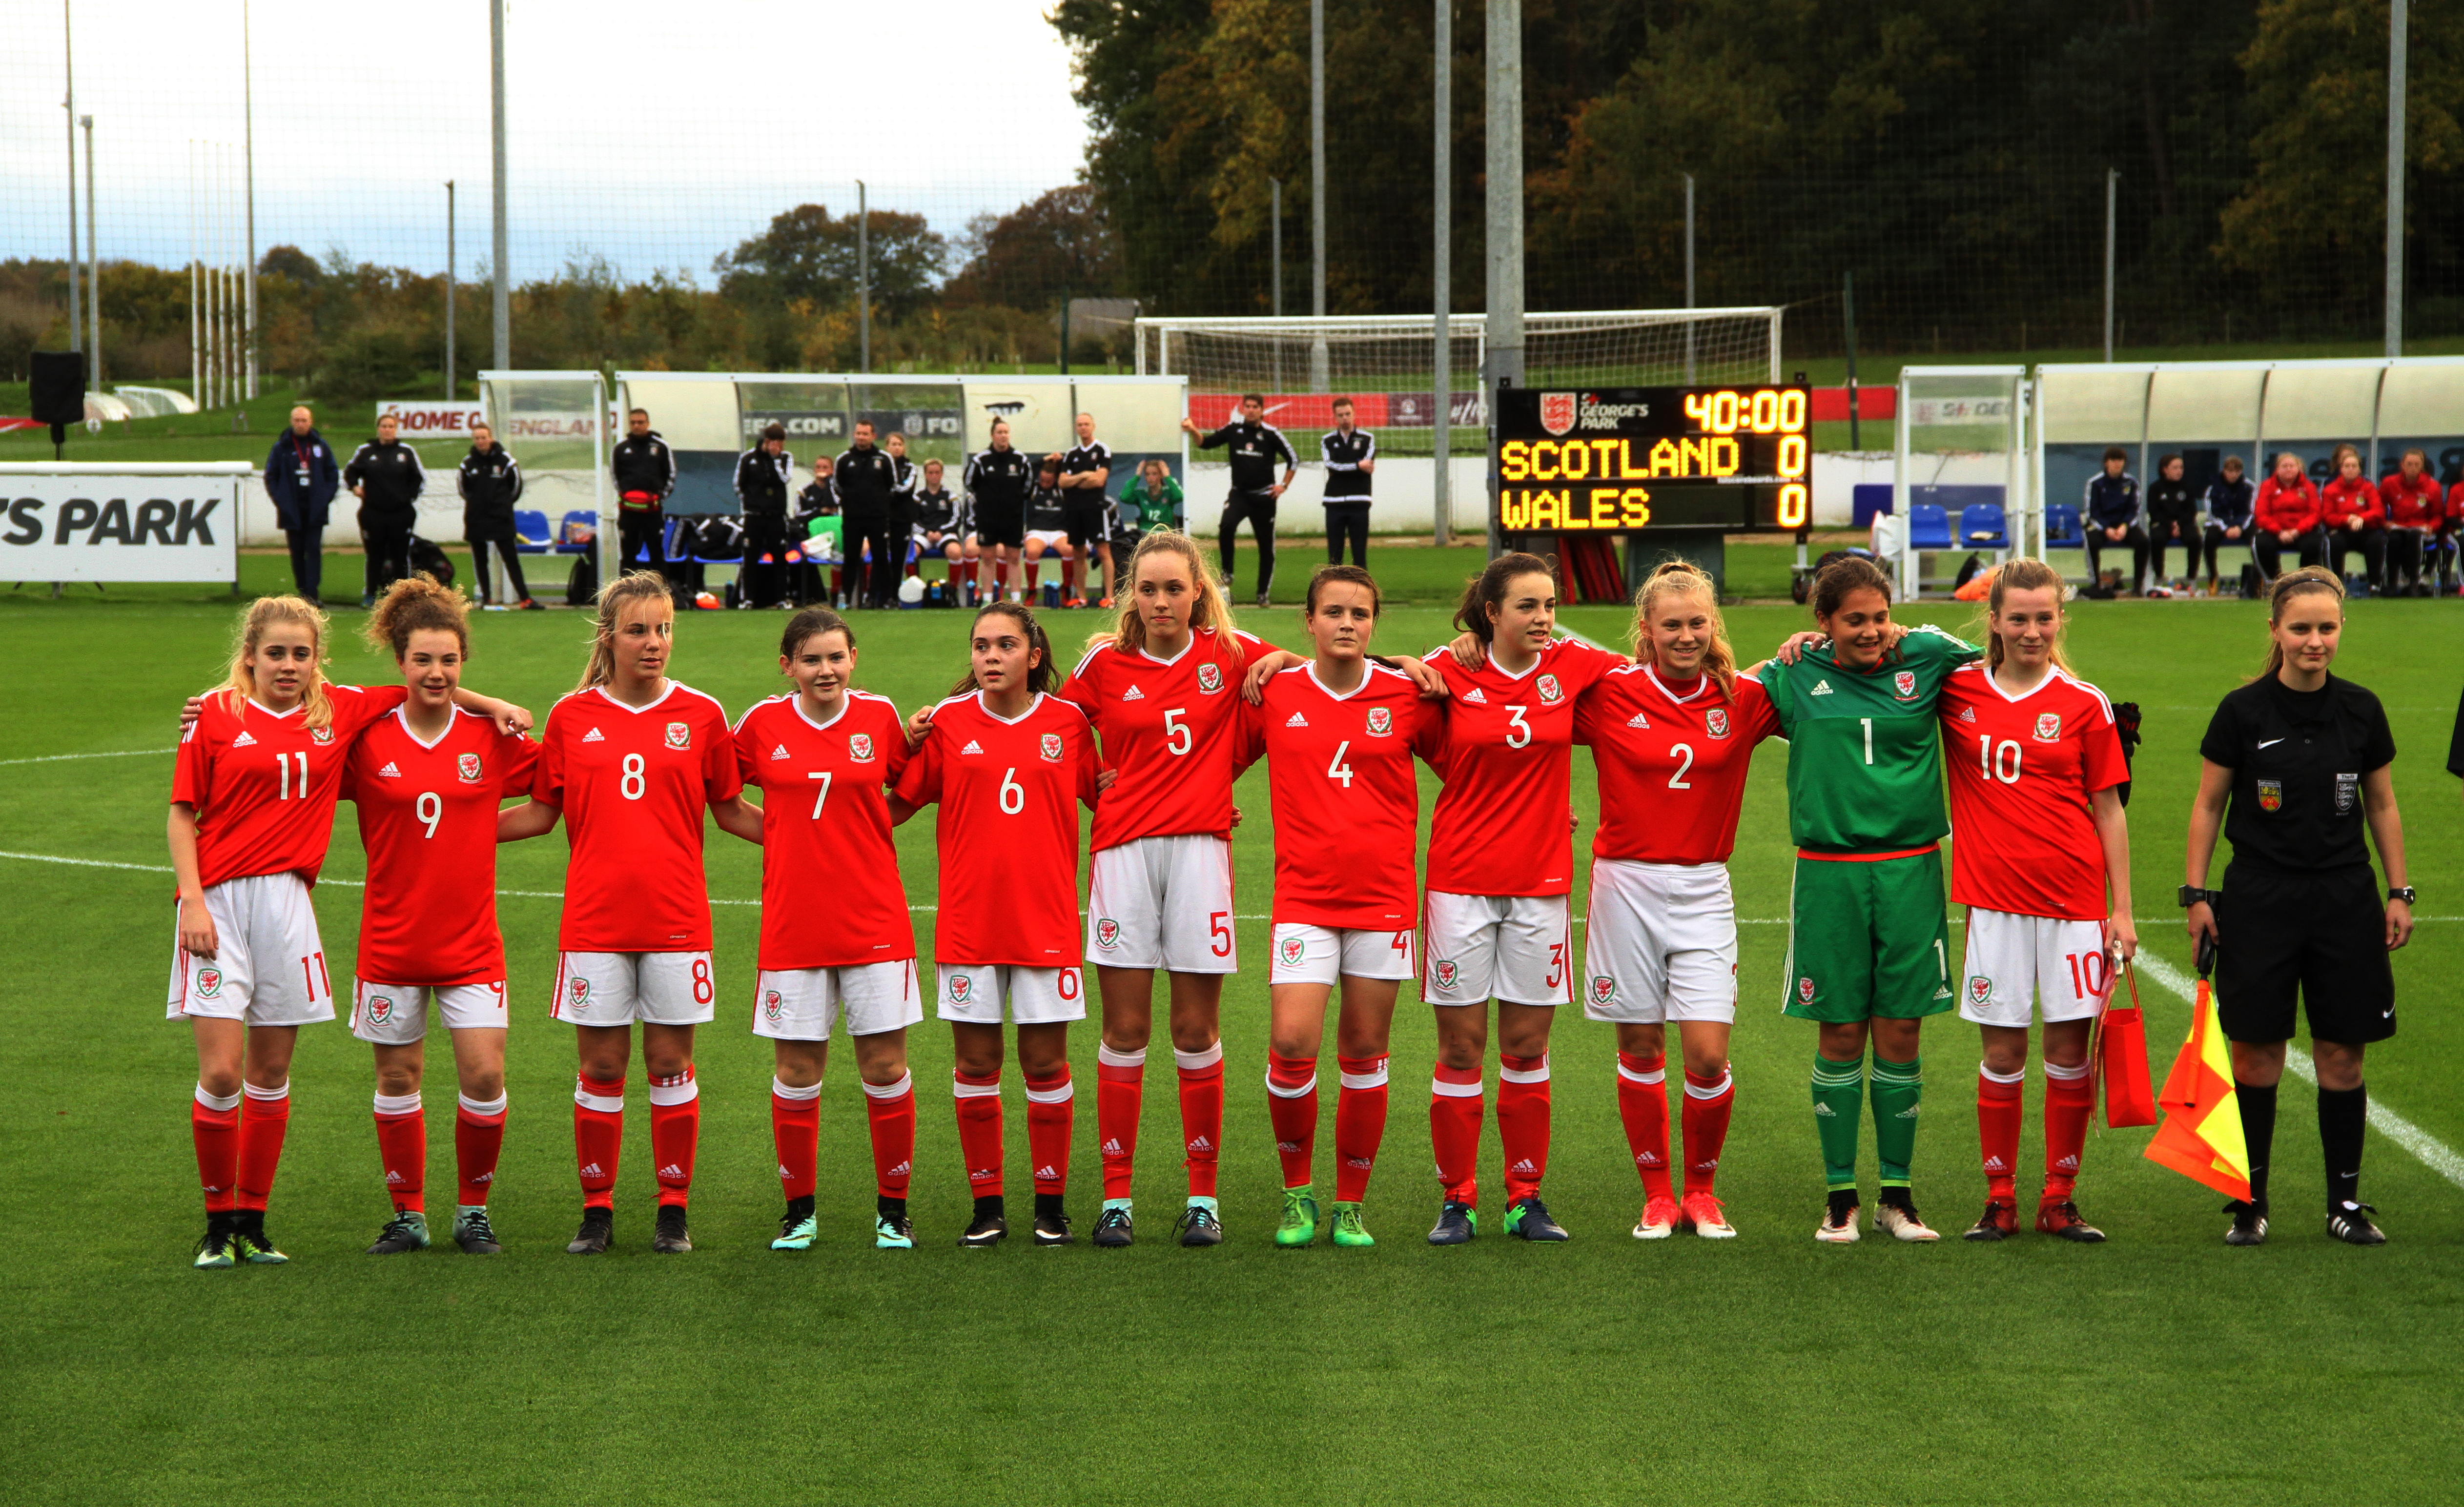 Wales U15 coach proud of performances at St George's Park